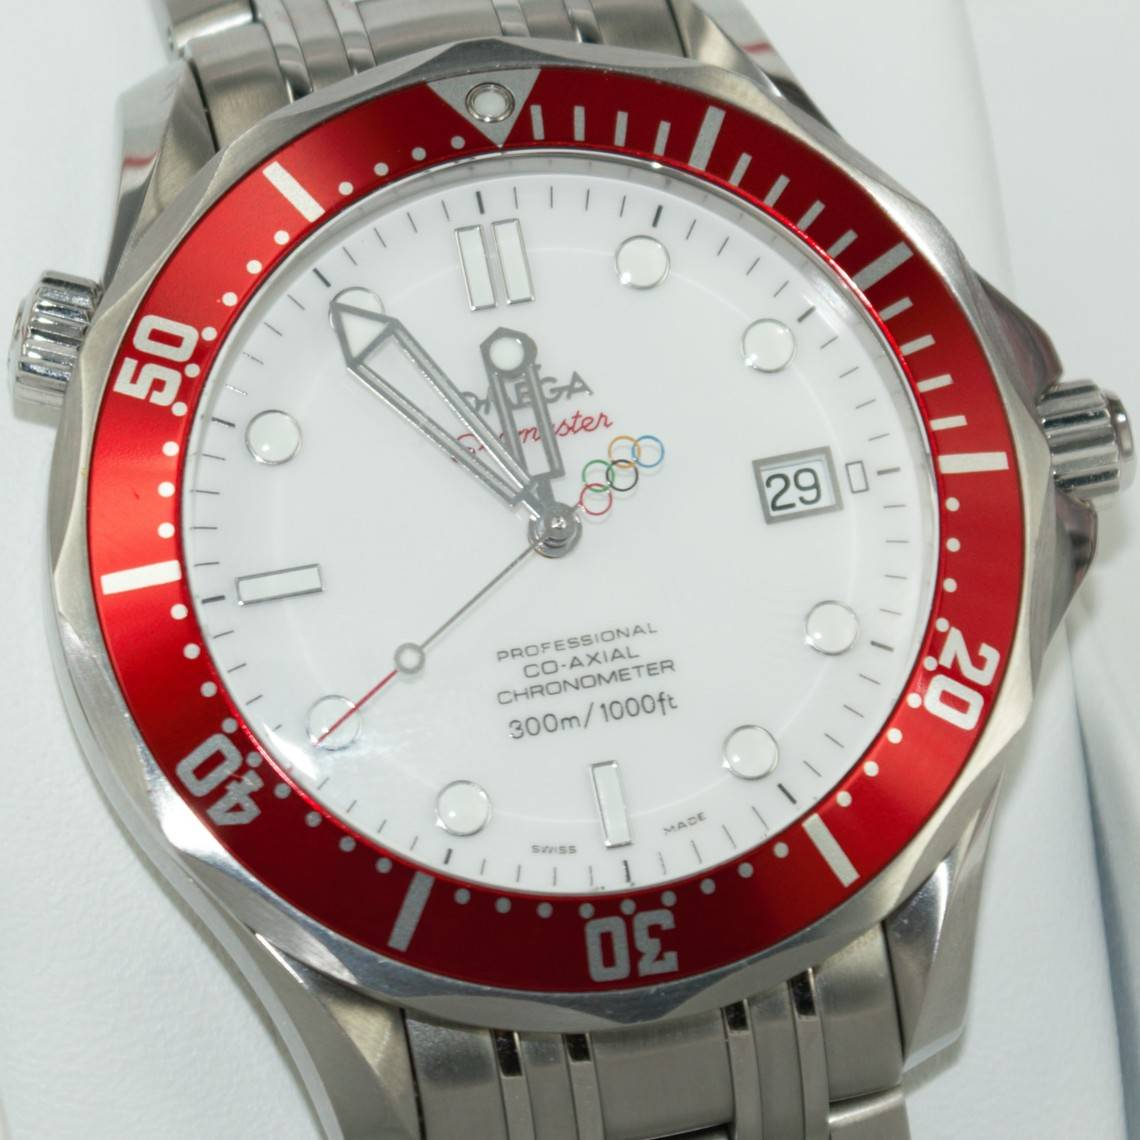 Seamaster co-axial olimpiadi